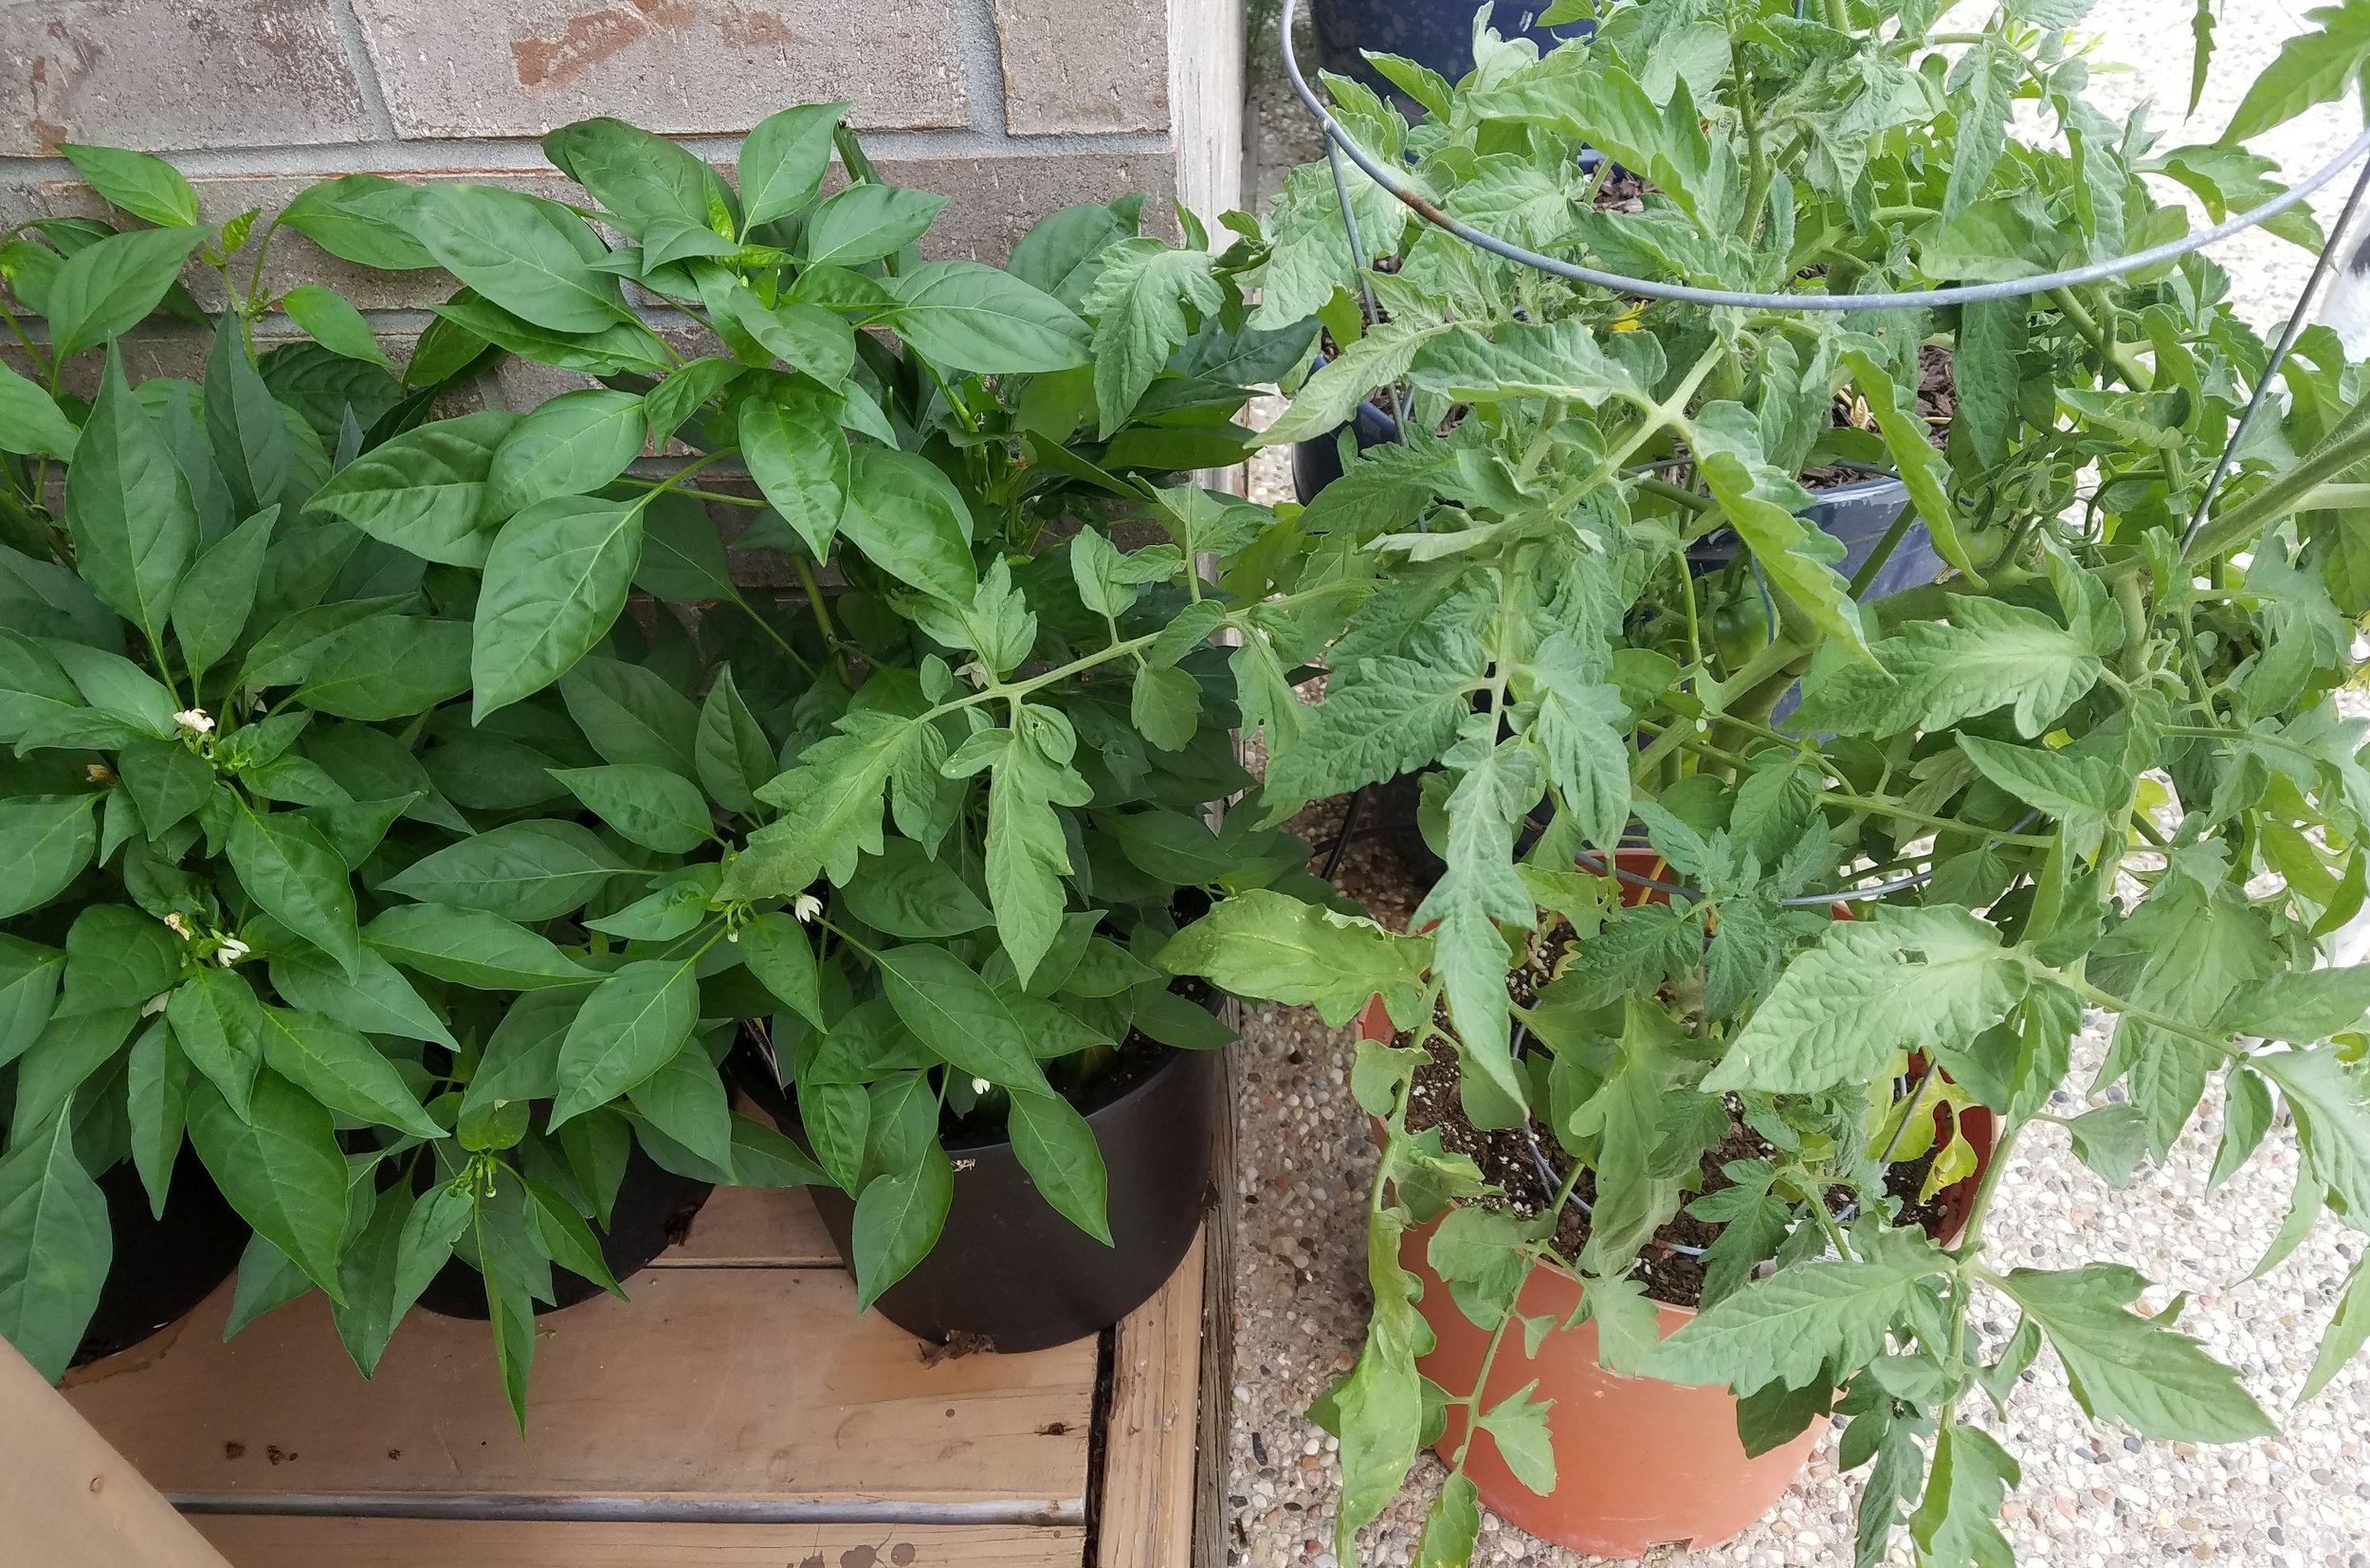 Some of Mama Yardful's containers - two thai chili peppers on the left and a tomato on the right